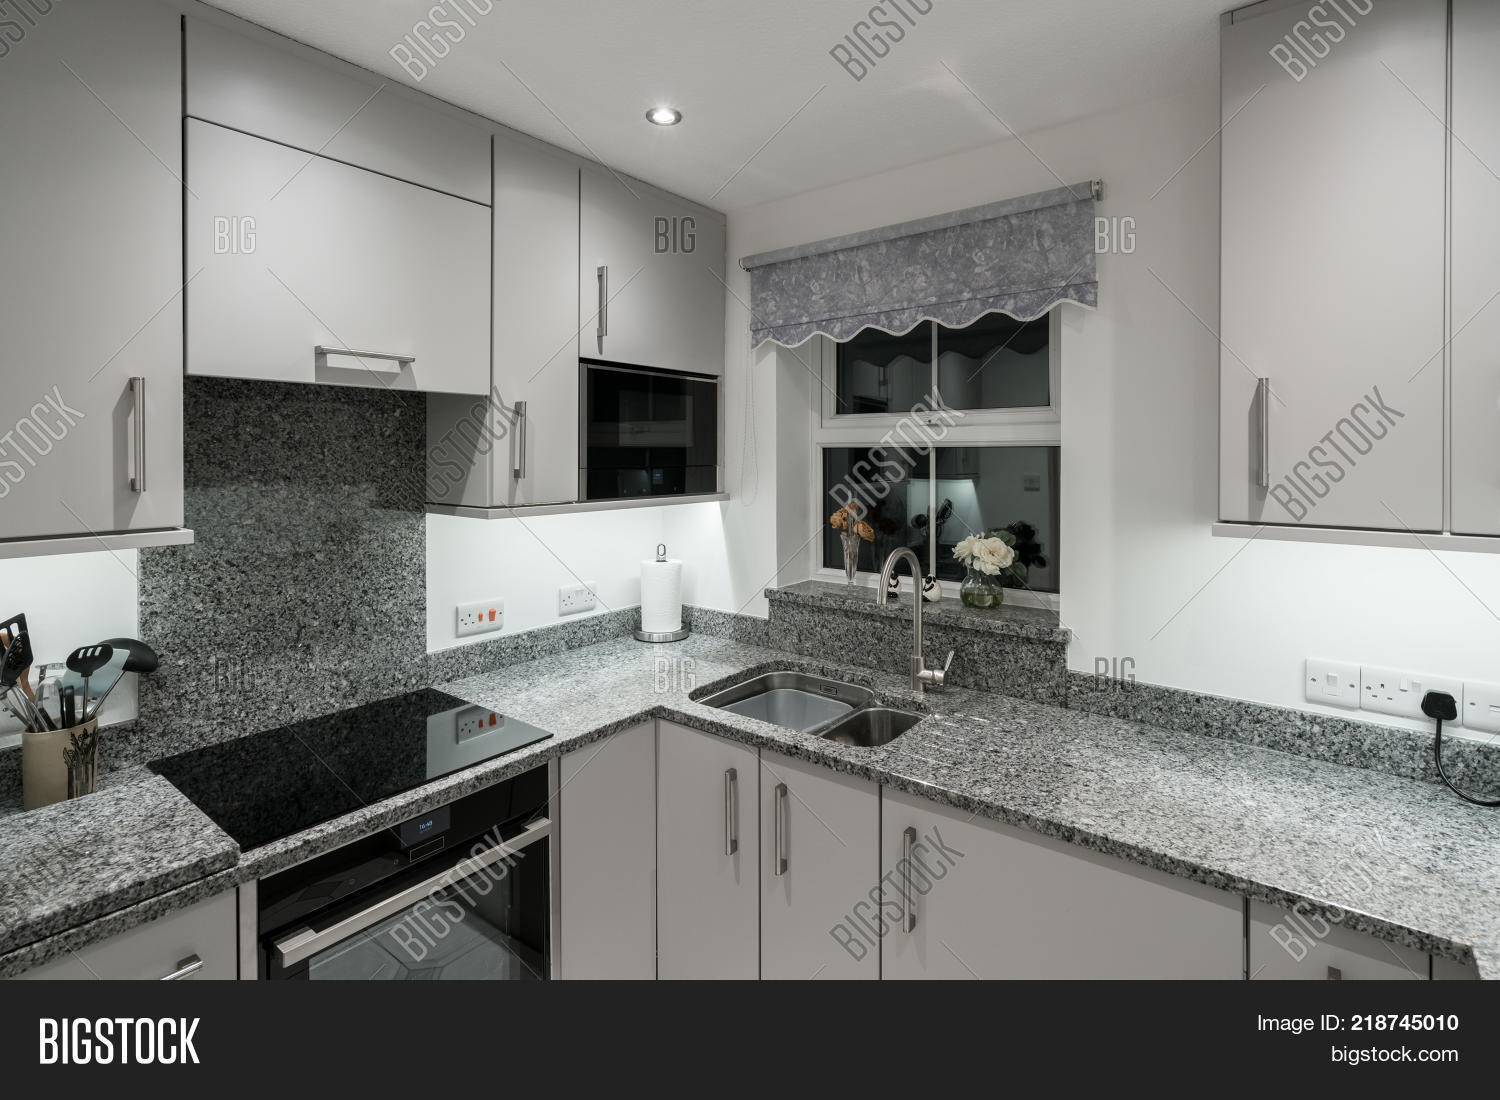 Small Modern Kitchen Image & Photo (Free Trial) | Bigstock